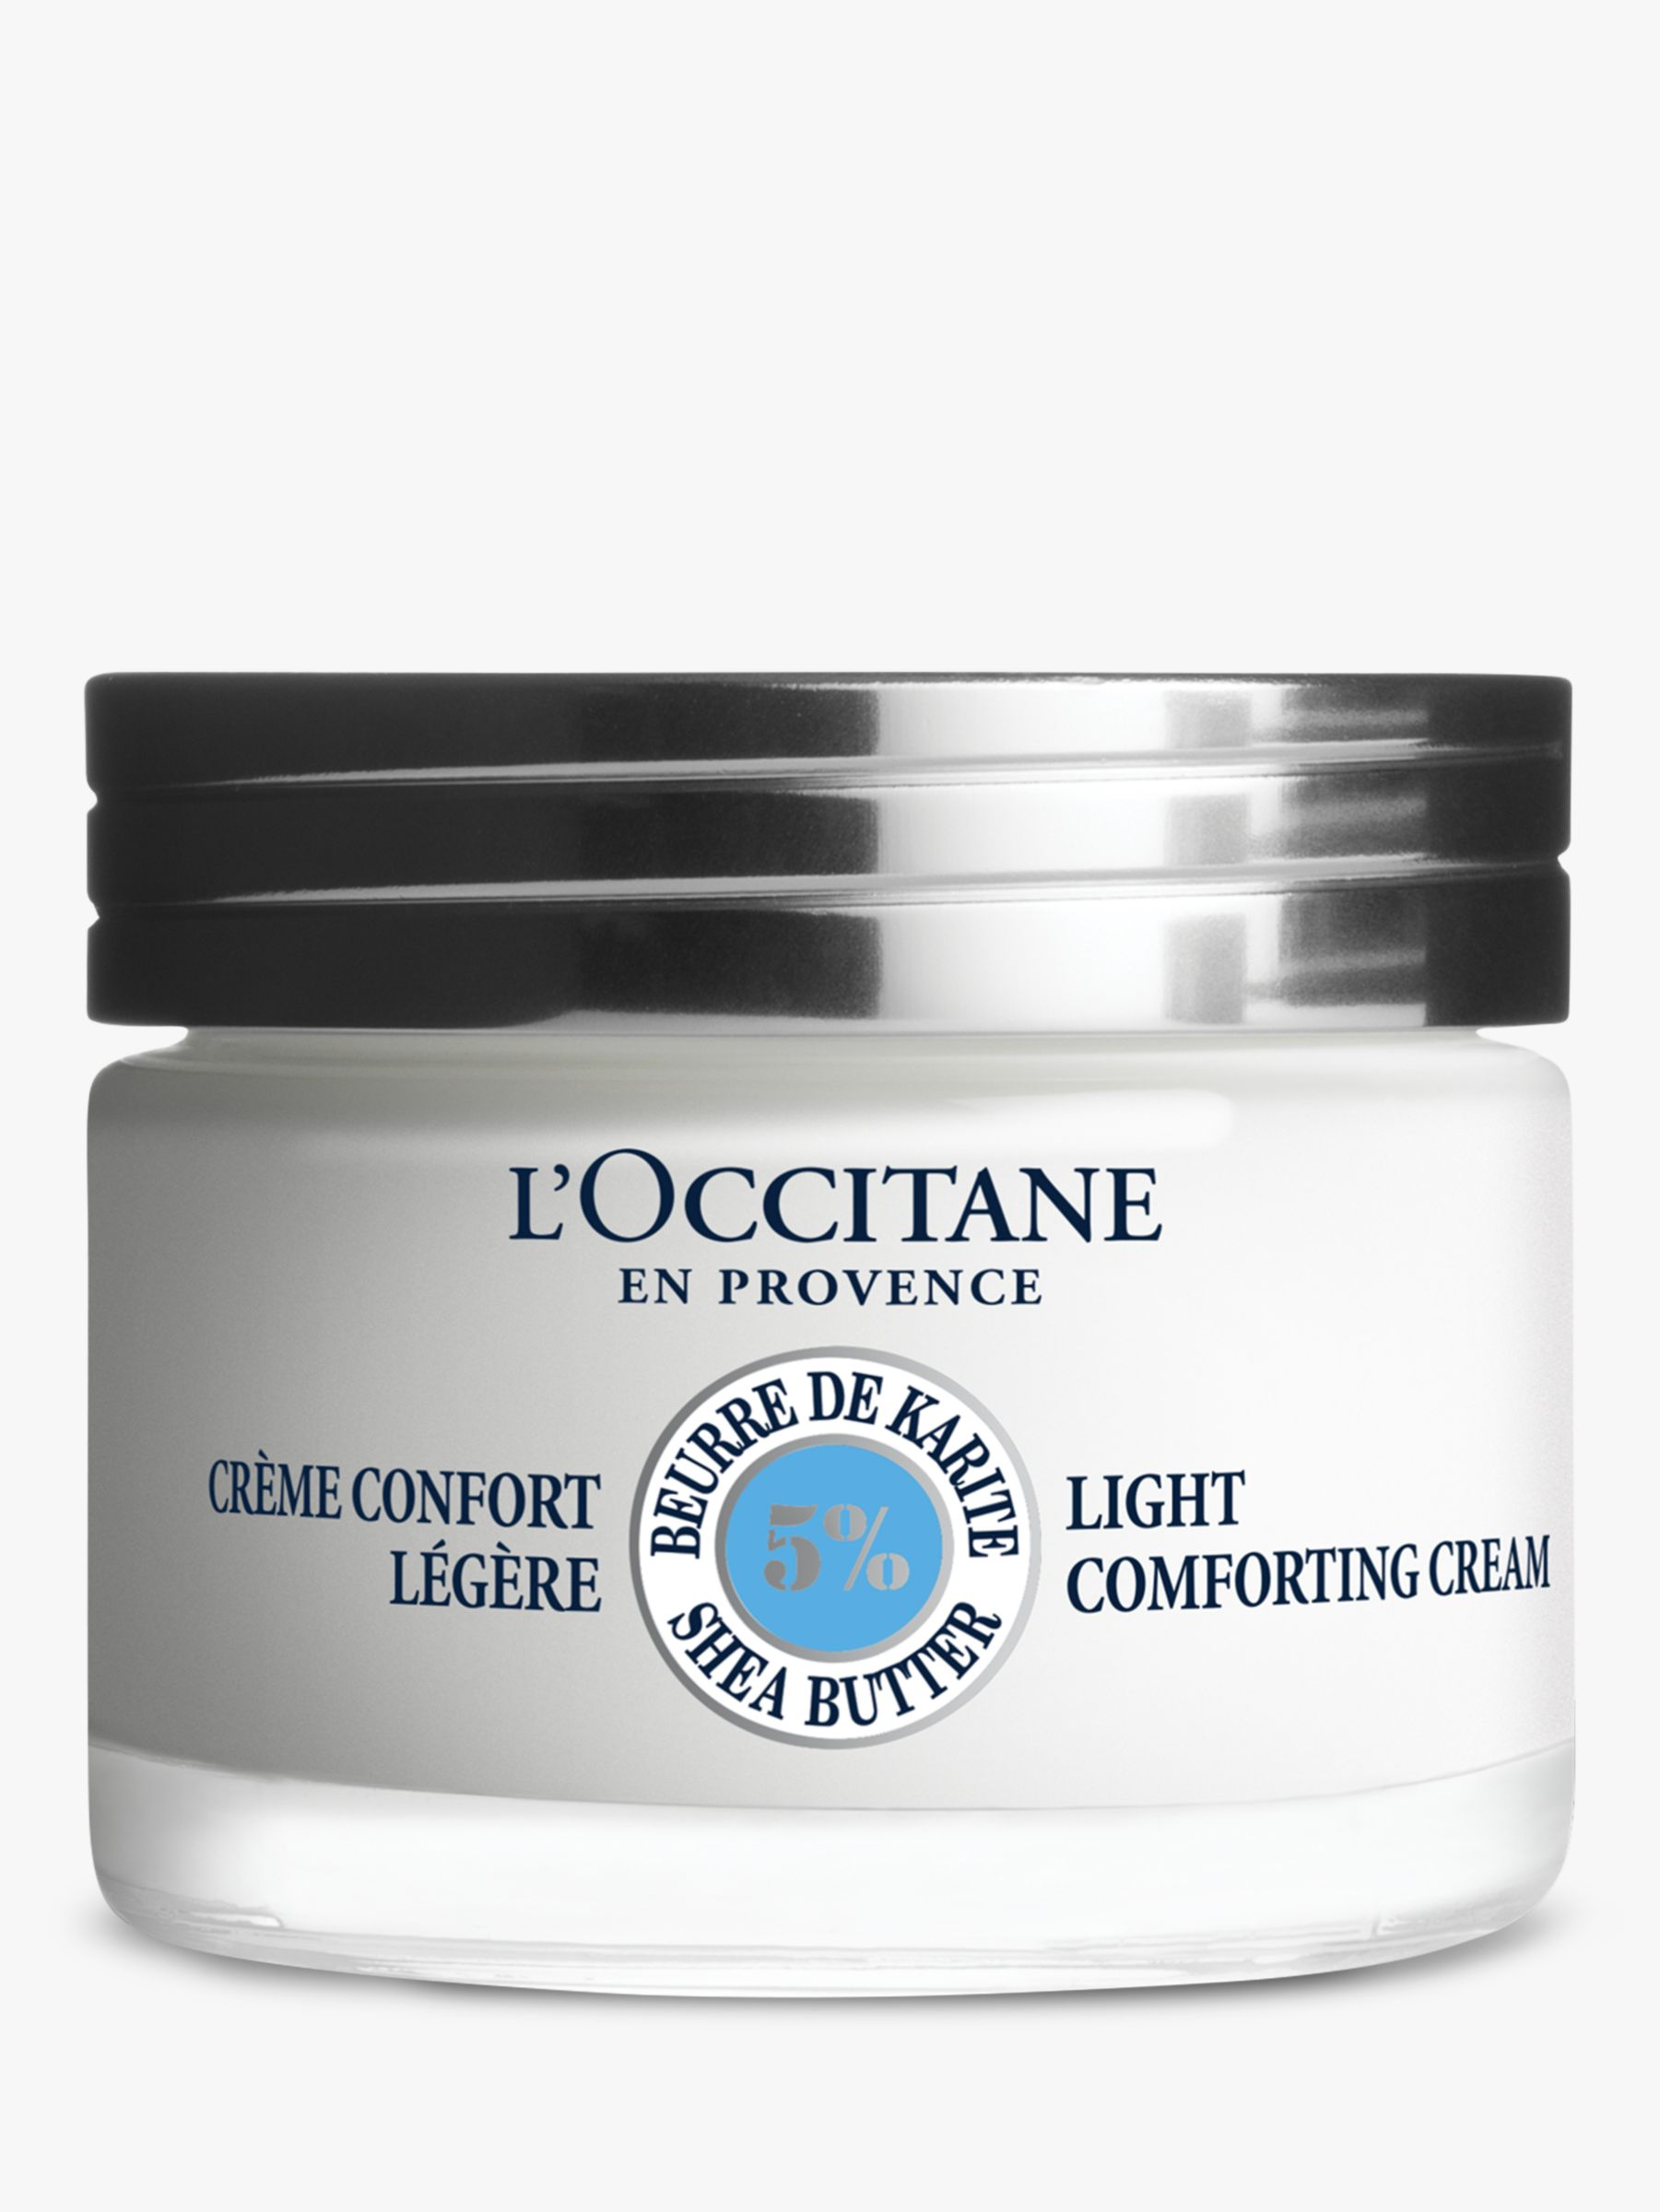 L'Occitane L'Occitane Light Shea Comforting Cream, 50ml